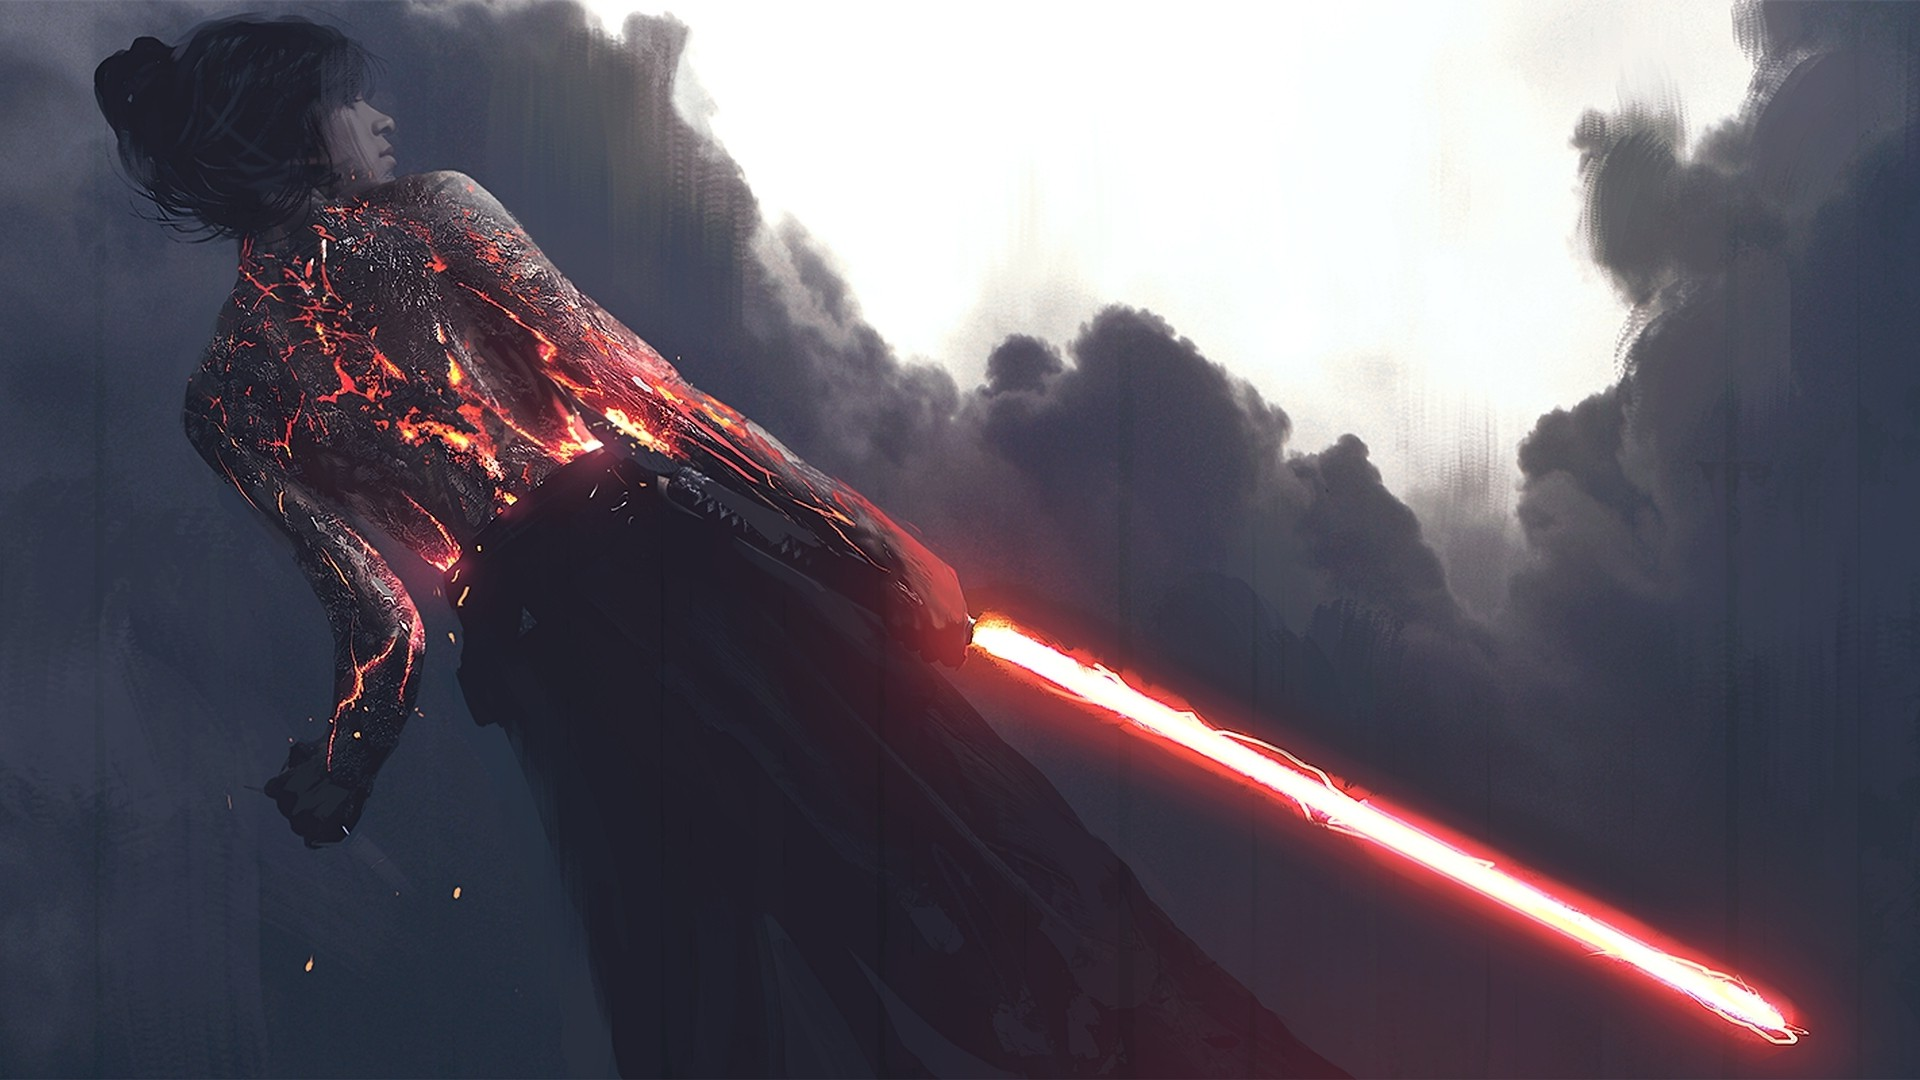 Star Wars Wallpaper Hd 1920x1080 Posted By Sarah Simpson